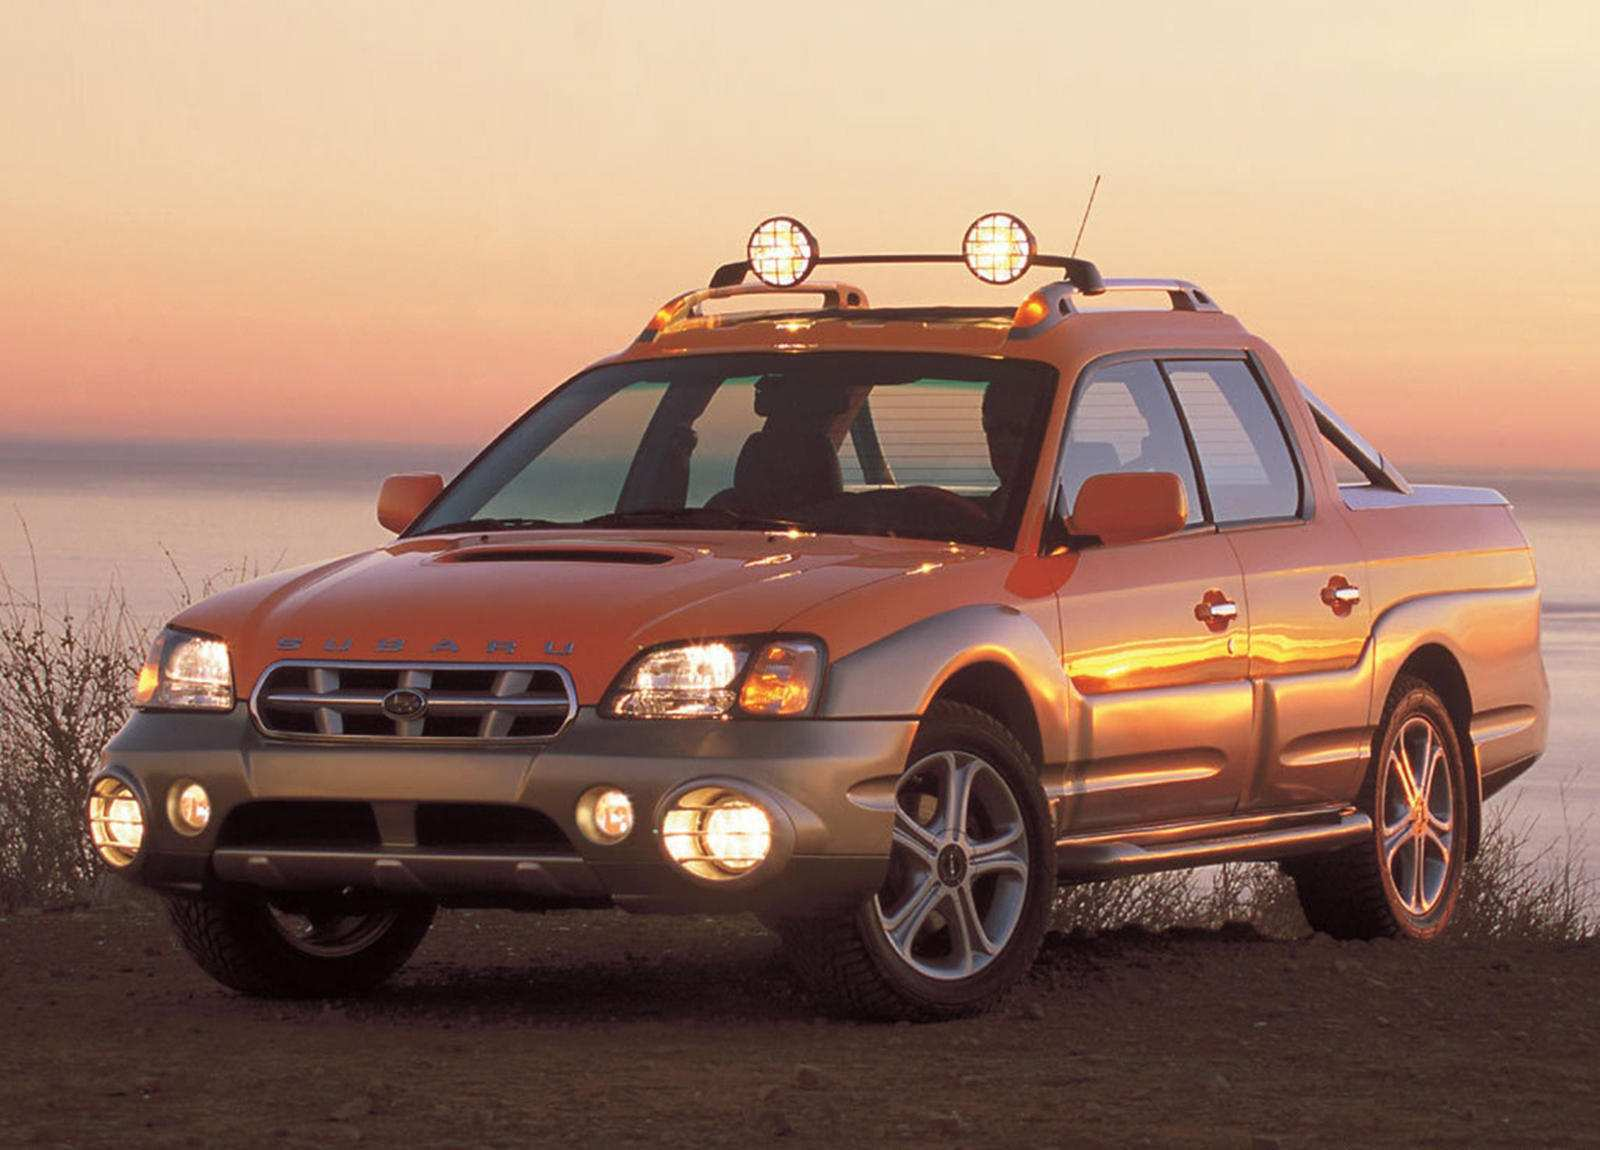 38 New Subaru Pickup Truck 2019 Redesign